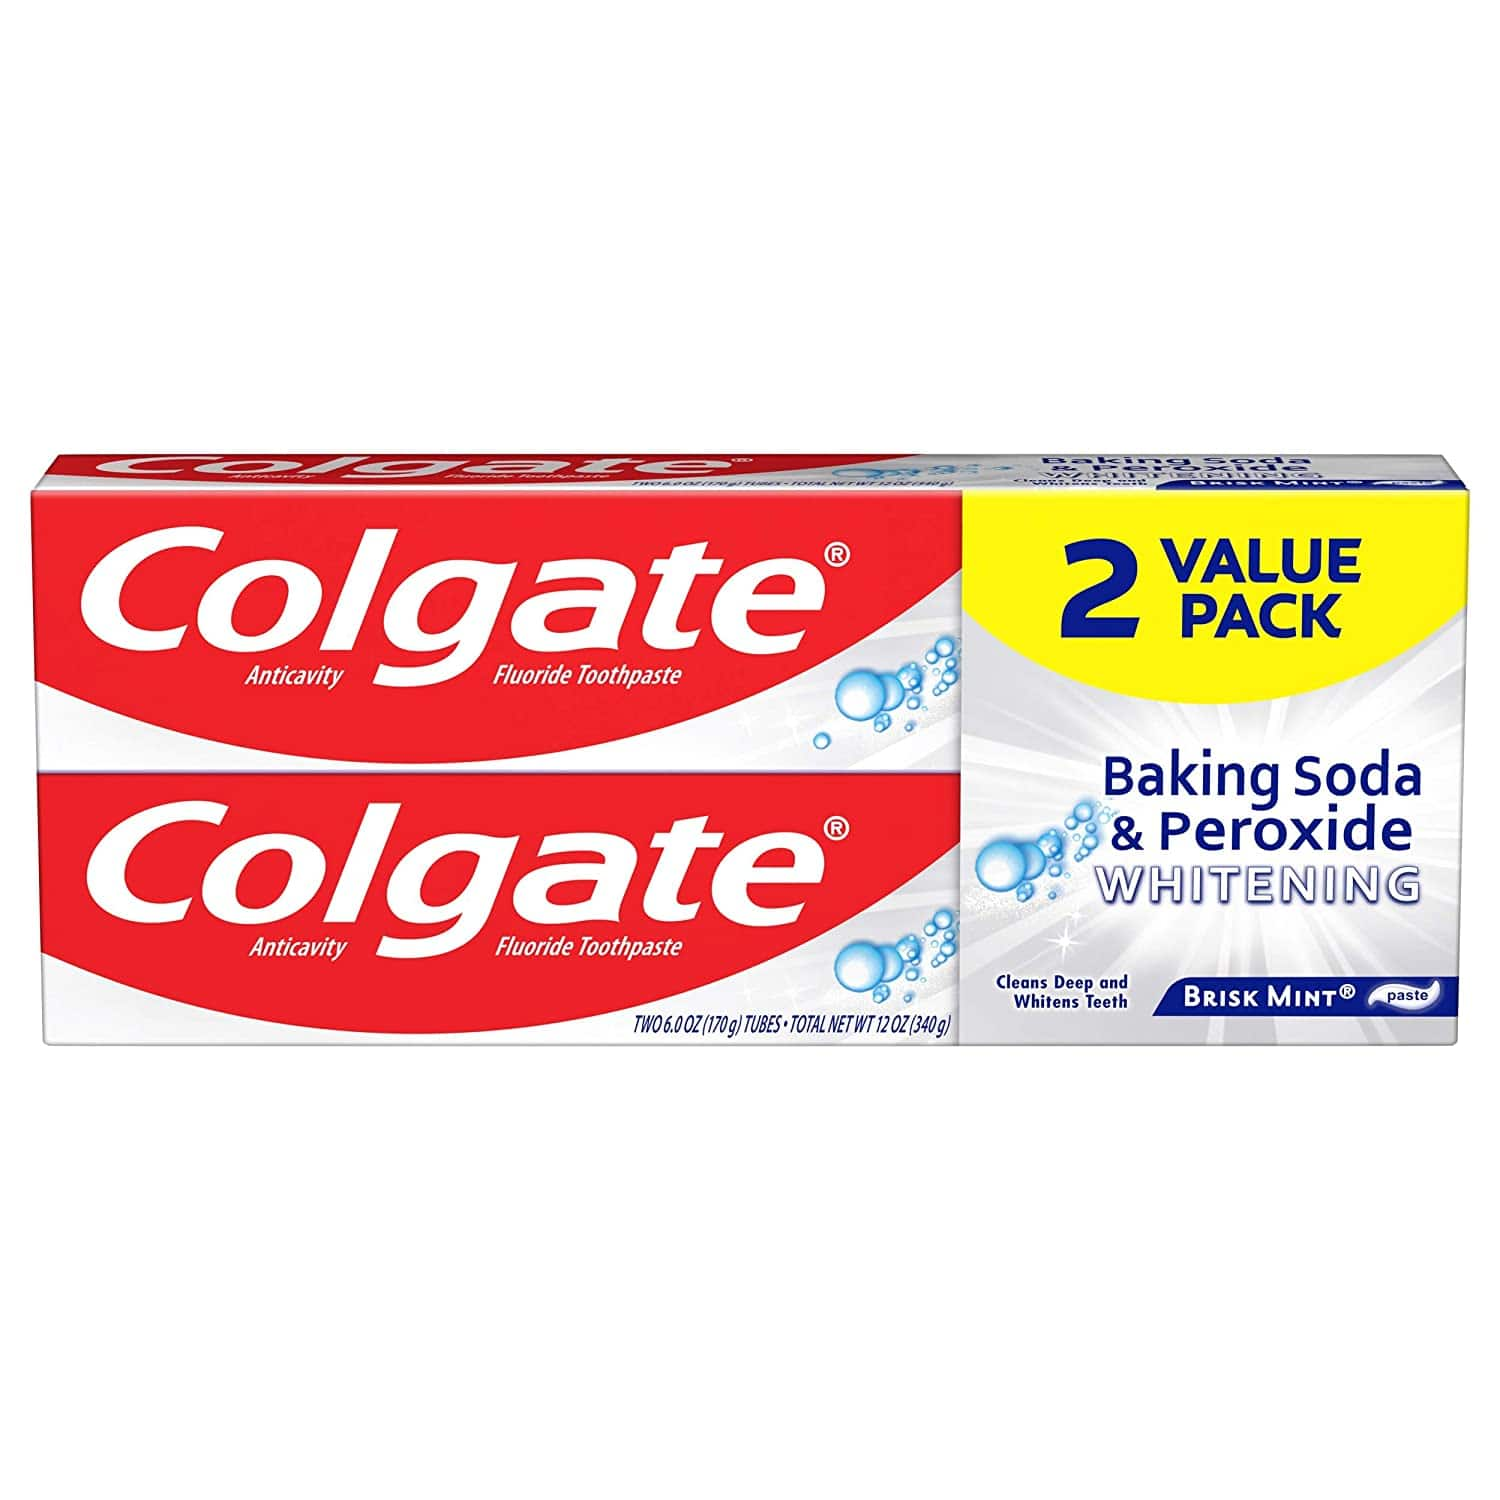 2-Pack 6-Oz Colgate Baking Soda and Peroxide Whitening Toothpaste (Brisk Mint) $1.50 ($0.75 each) + Free Shipping w/ Prime or on $25+